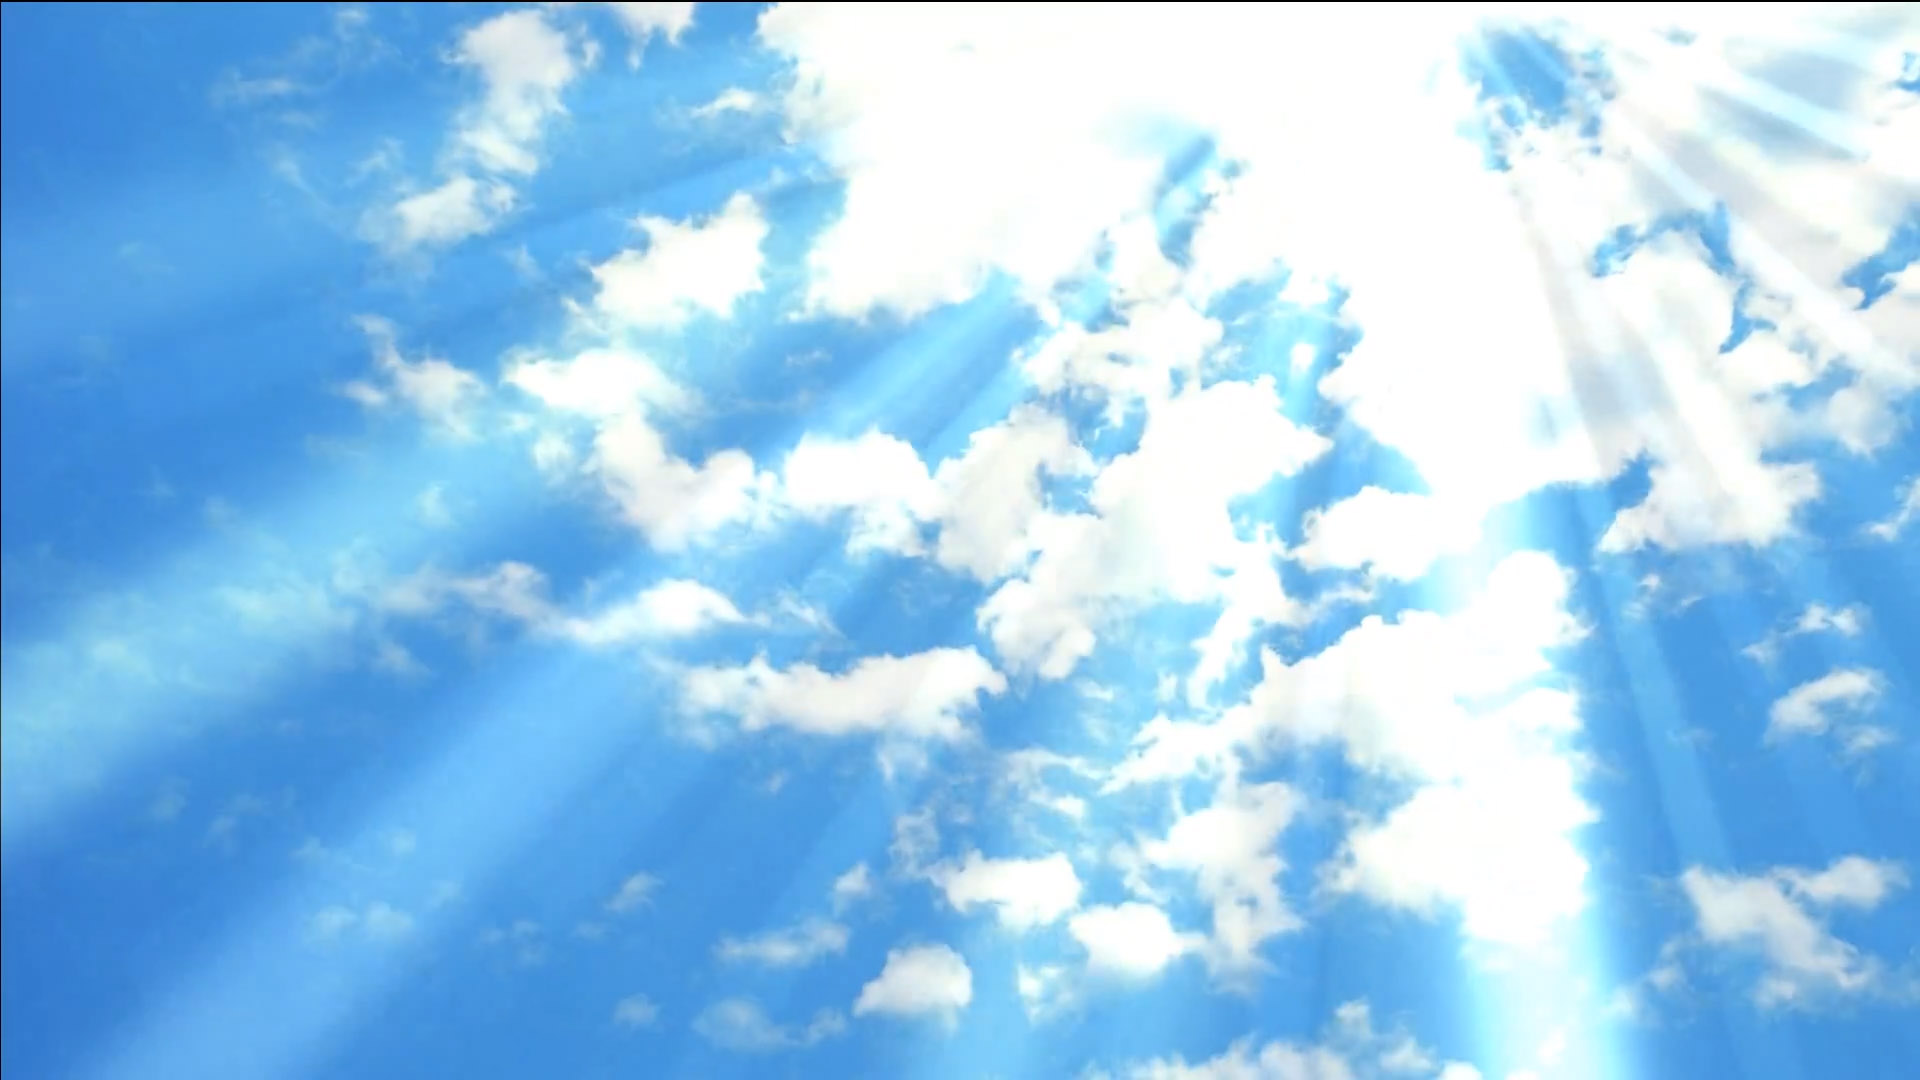 Animated Sun Shining Light On Blue Sky